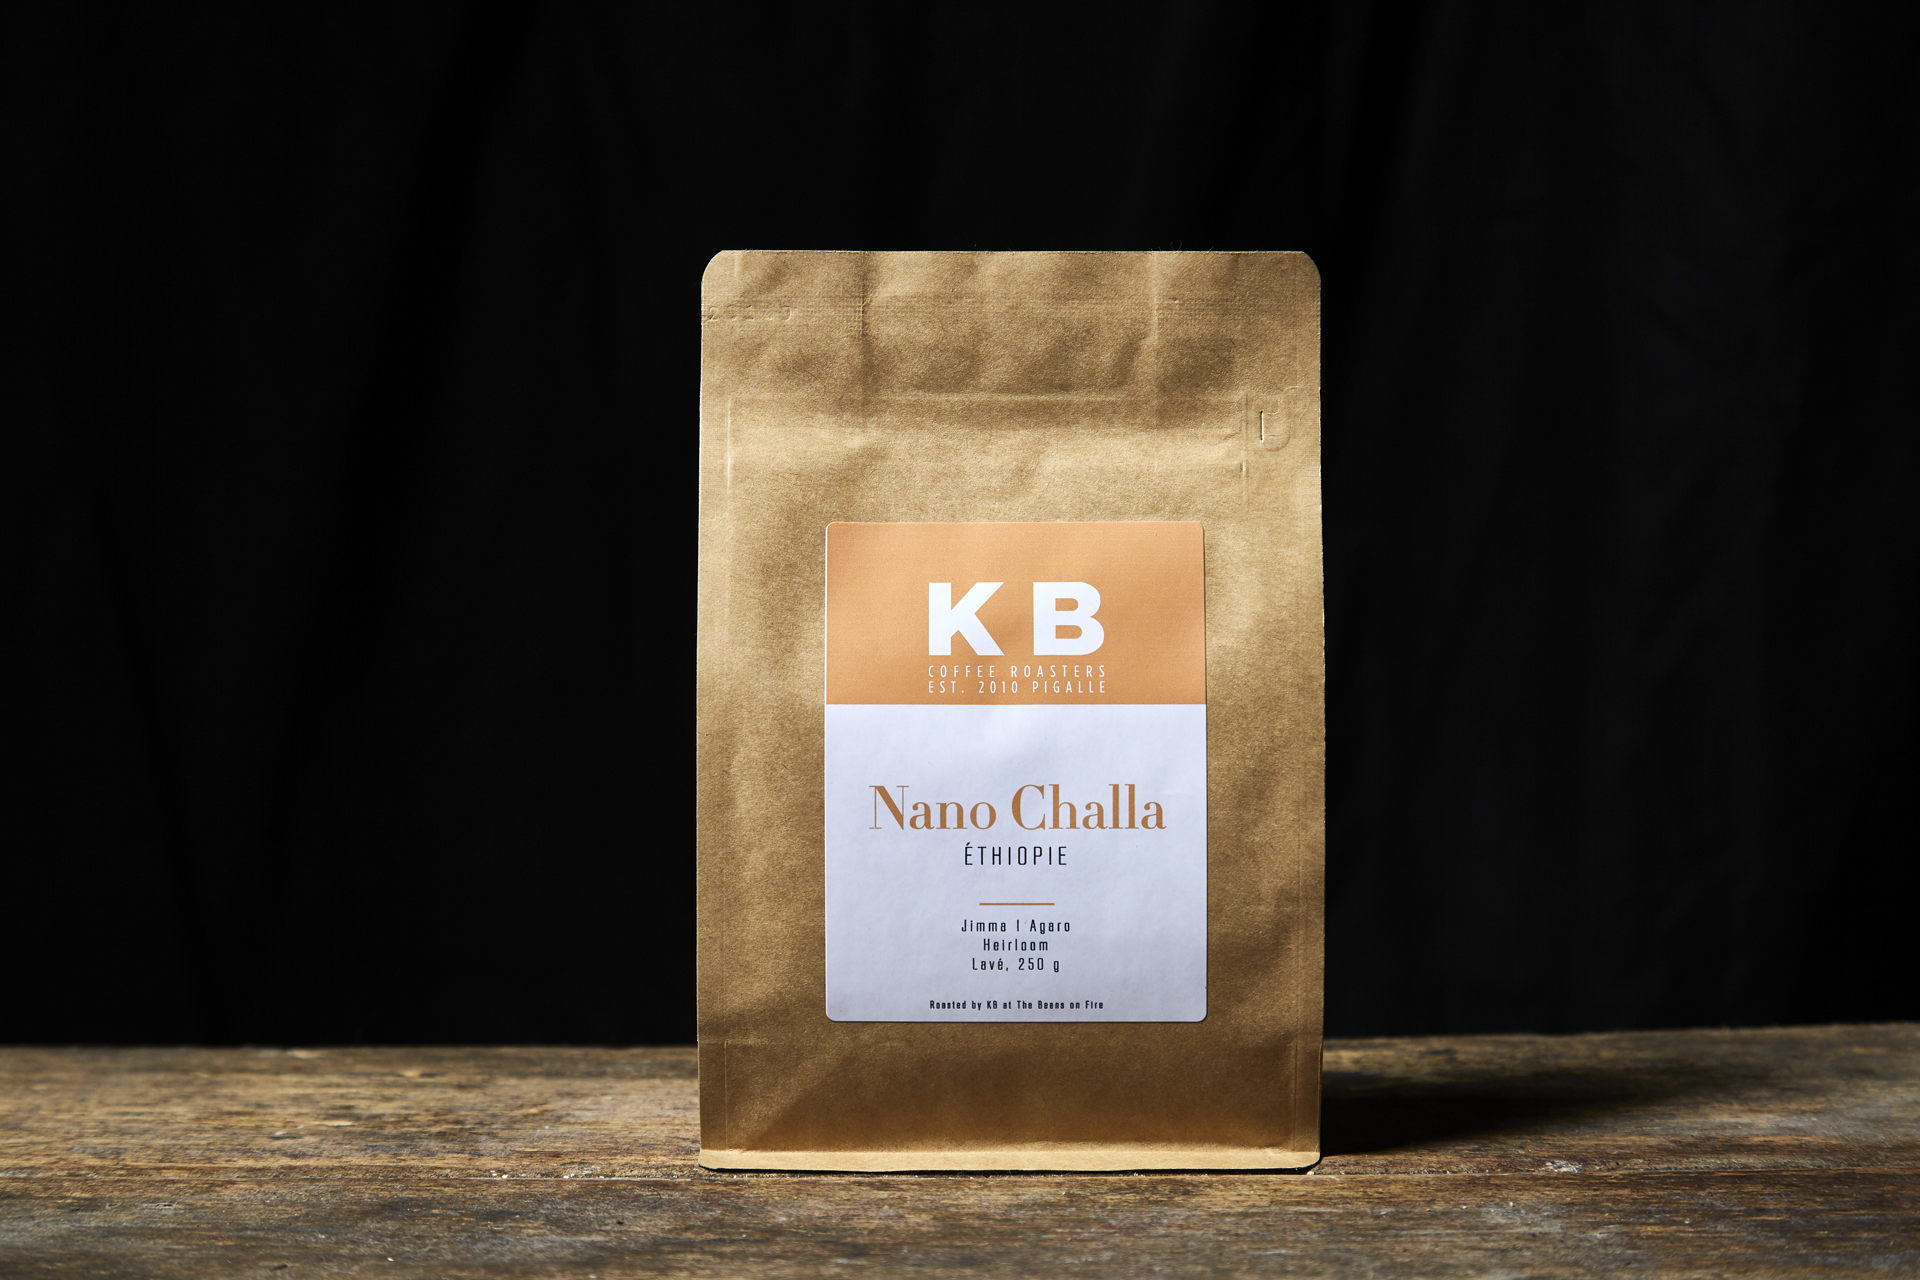 20.Nano-Challa-Ethiopie-20161003-KB_Coffee-Packs2314